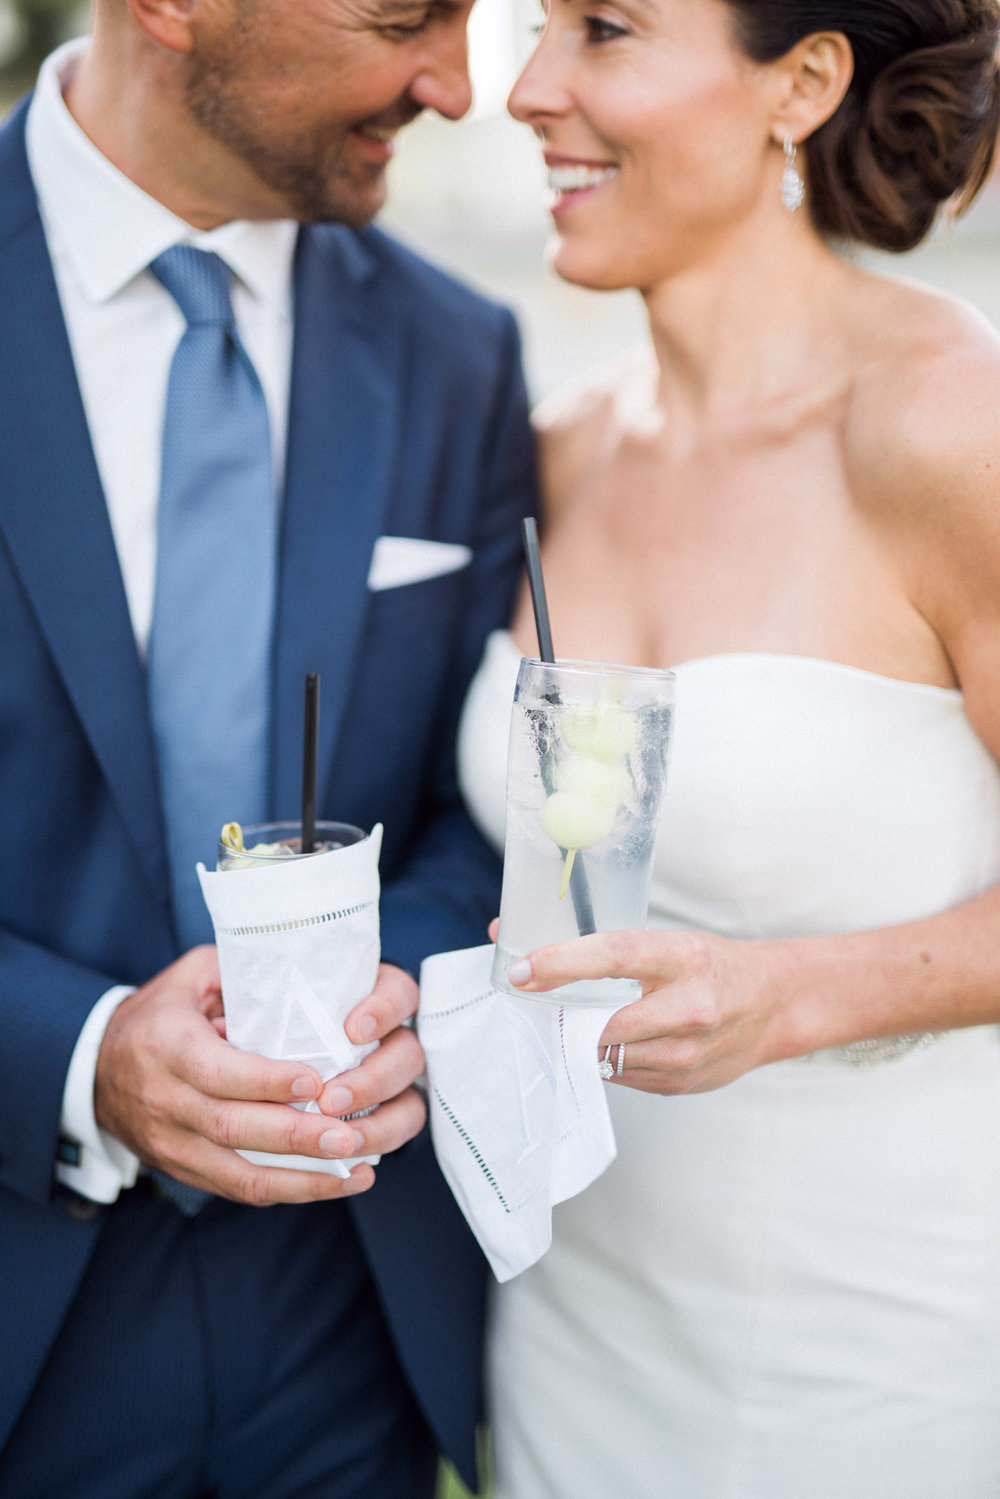 bride and groom holding cocktails in monogramed hemstich napkin at wedding reception